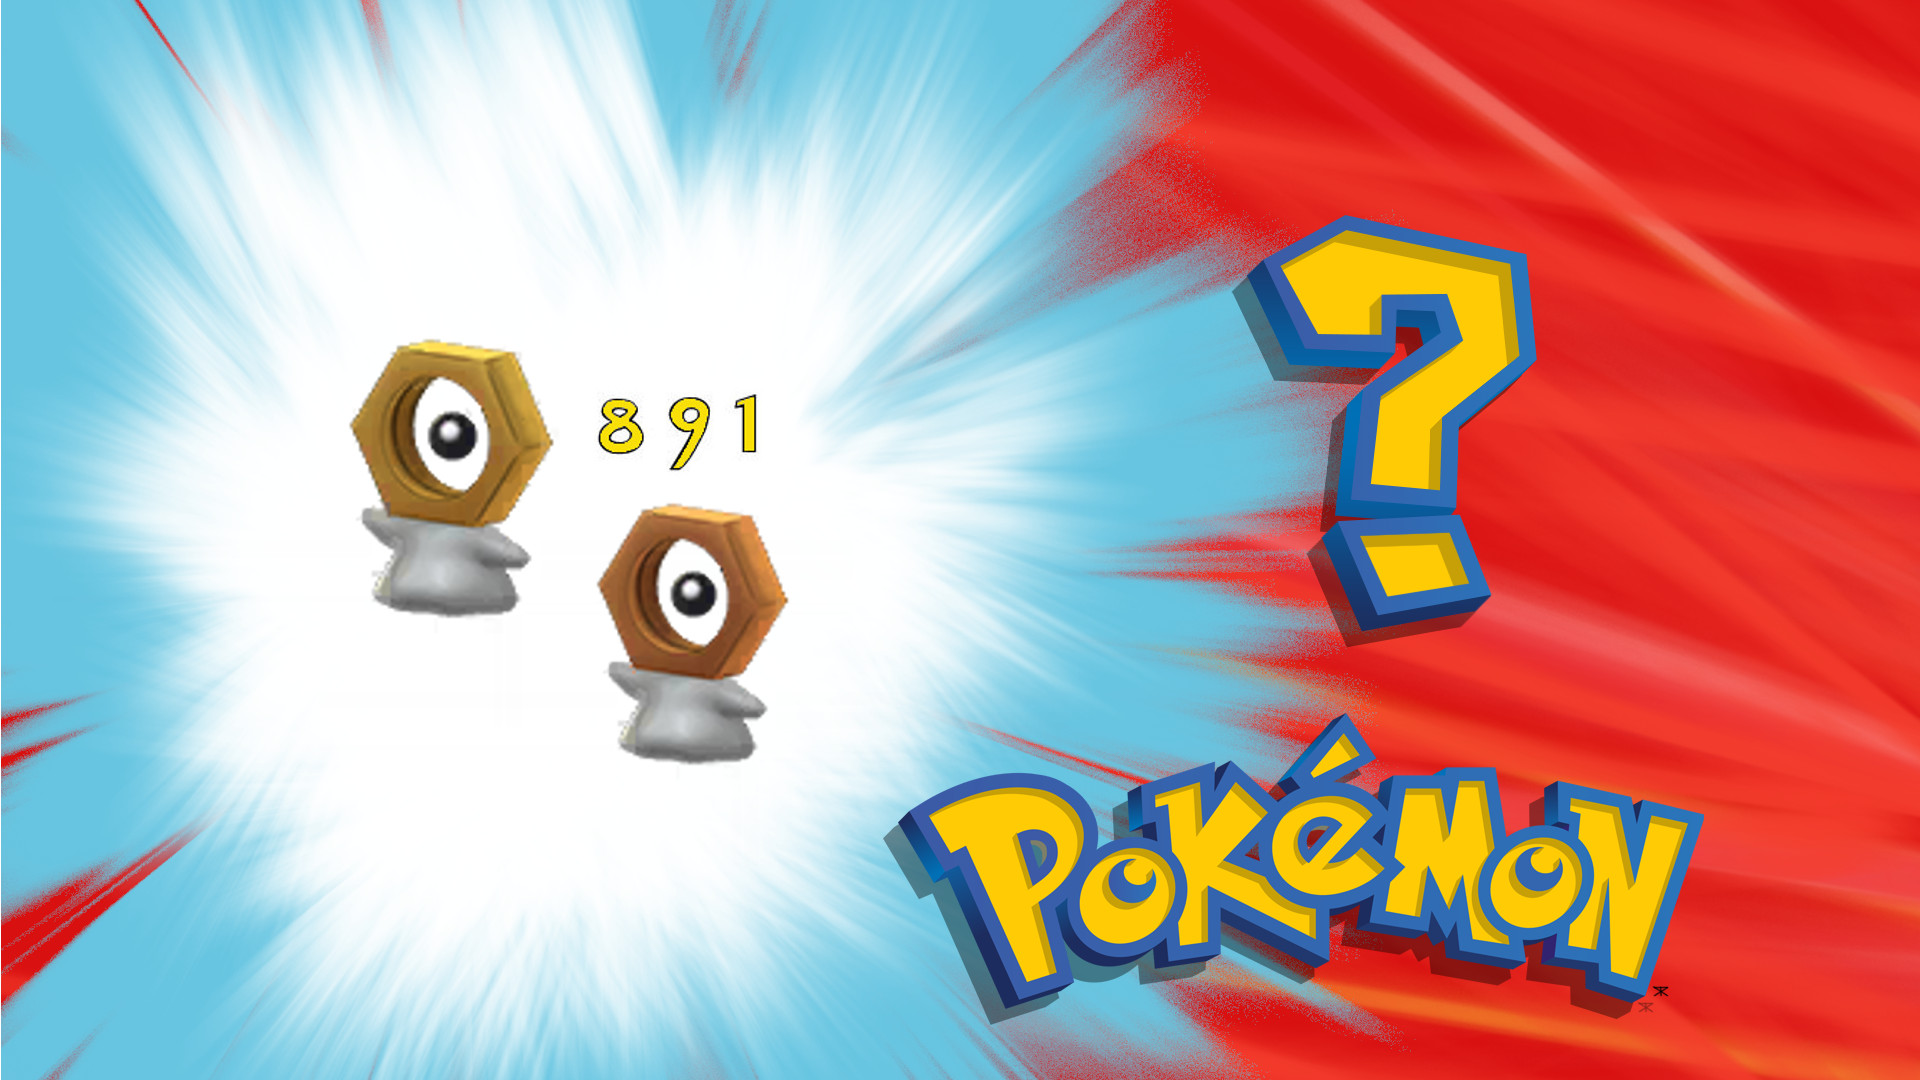 Photo of New Pokemon '891' Found in Pokemon Go Data by Chrales (Update)